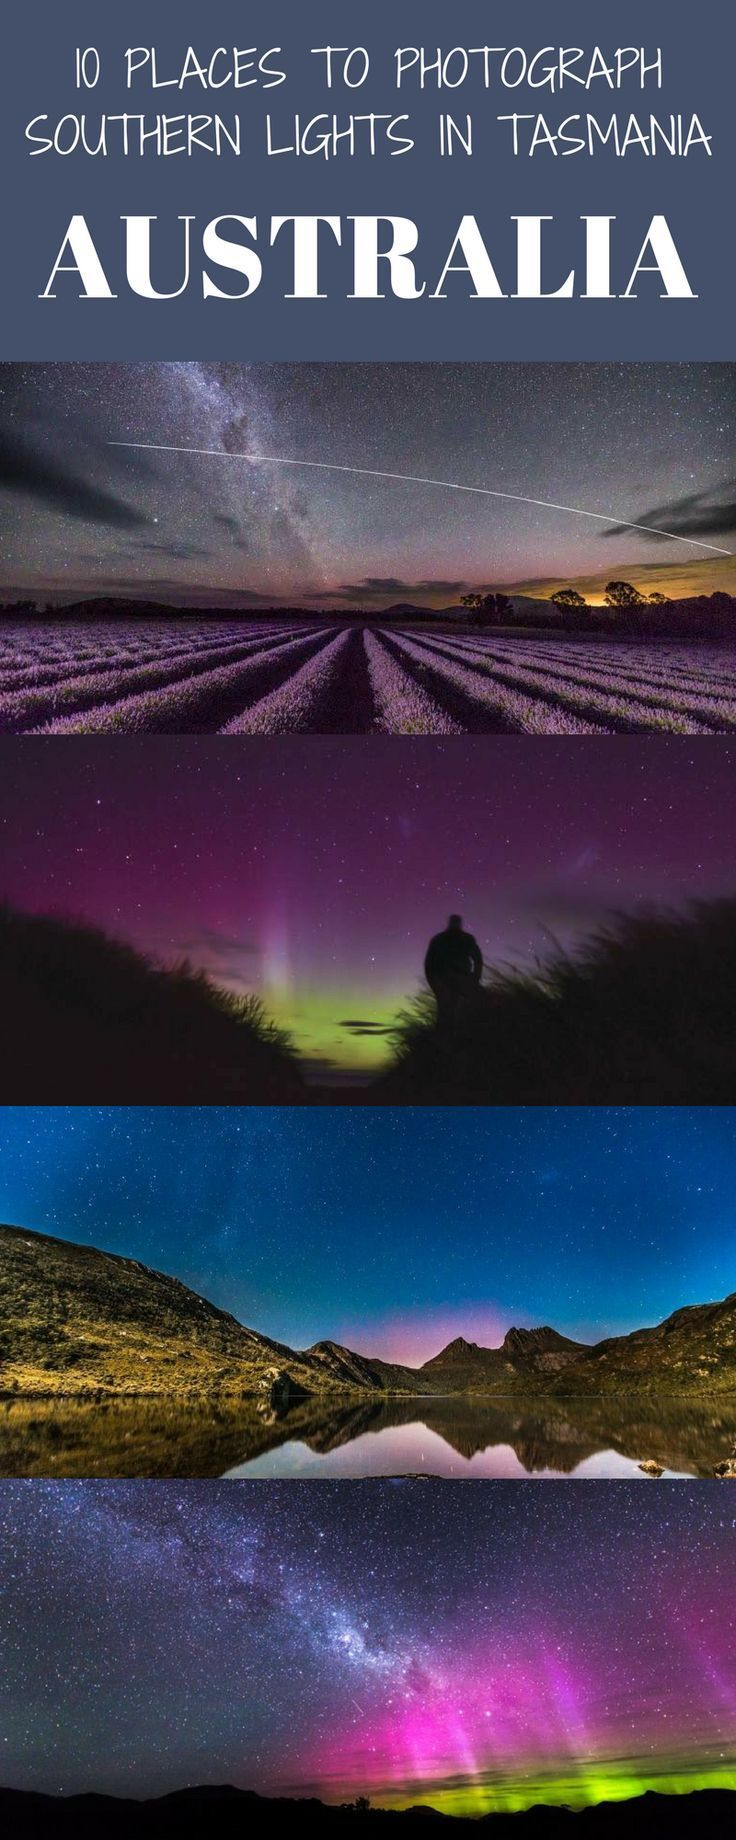 10 places to photograph Southern Lights. Star gazing is relaxing and peaceful. Fortunately, there are plenty of places in Australia to view the stars.